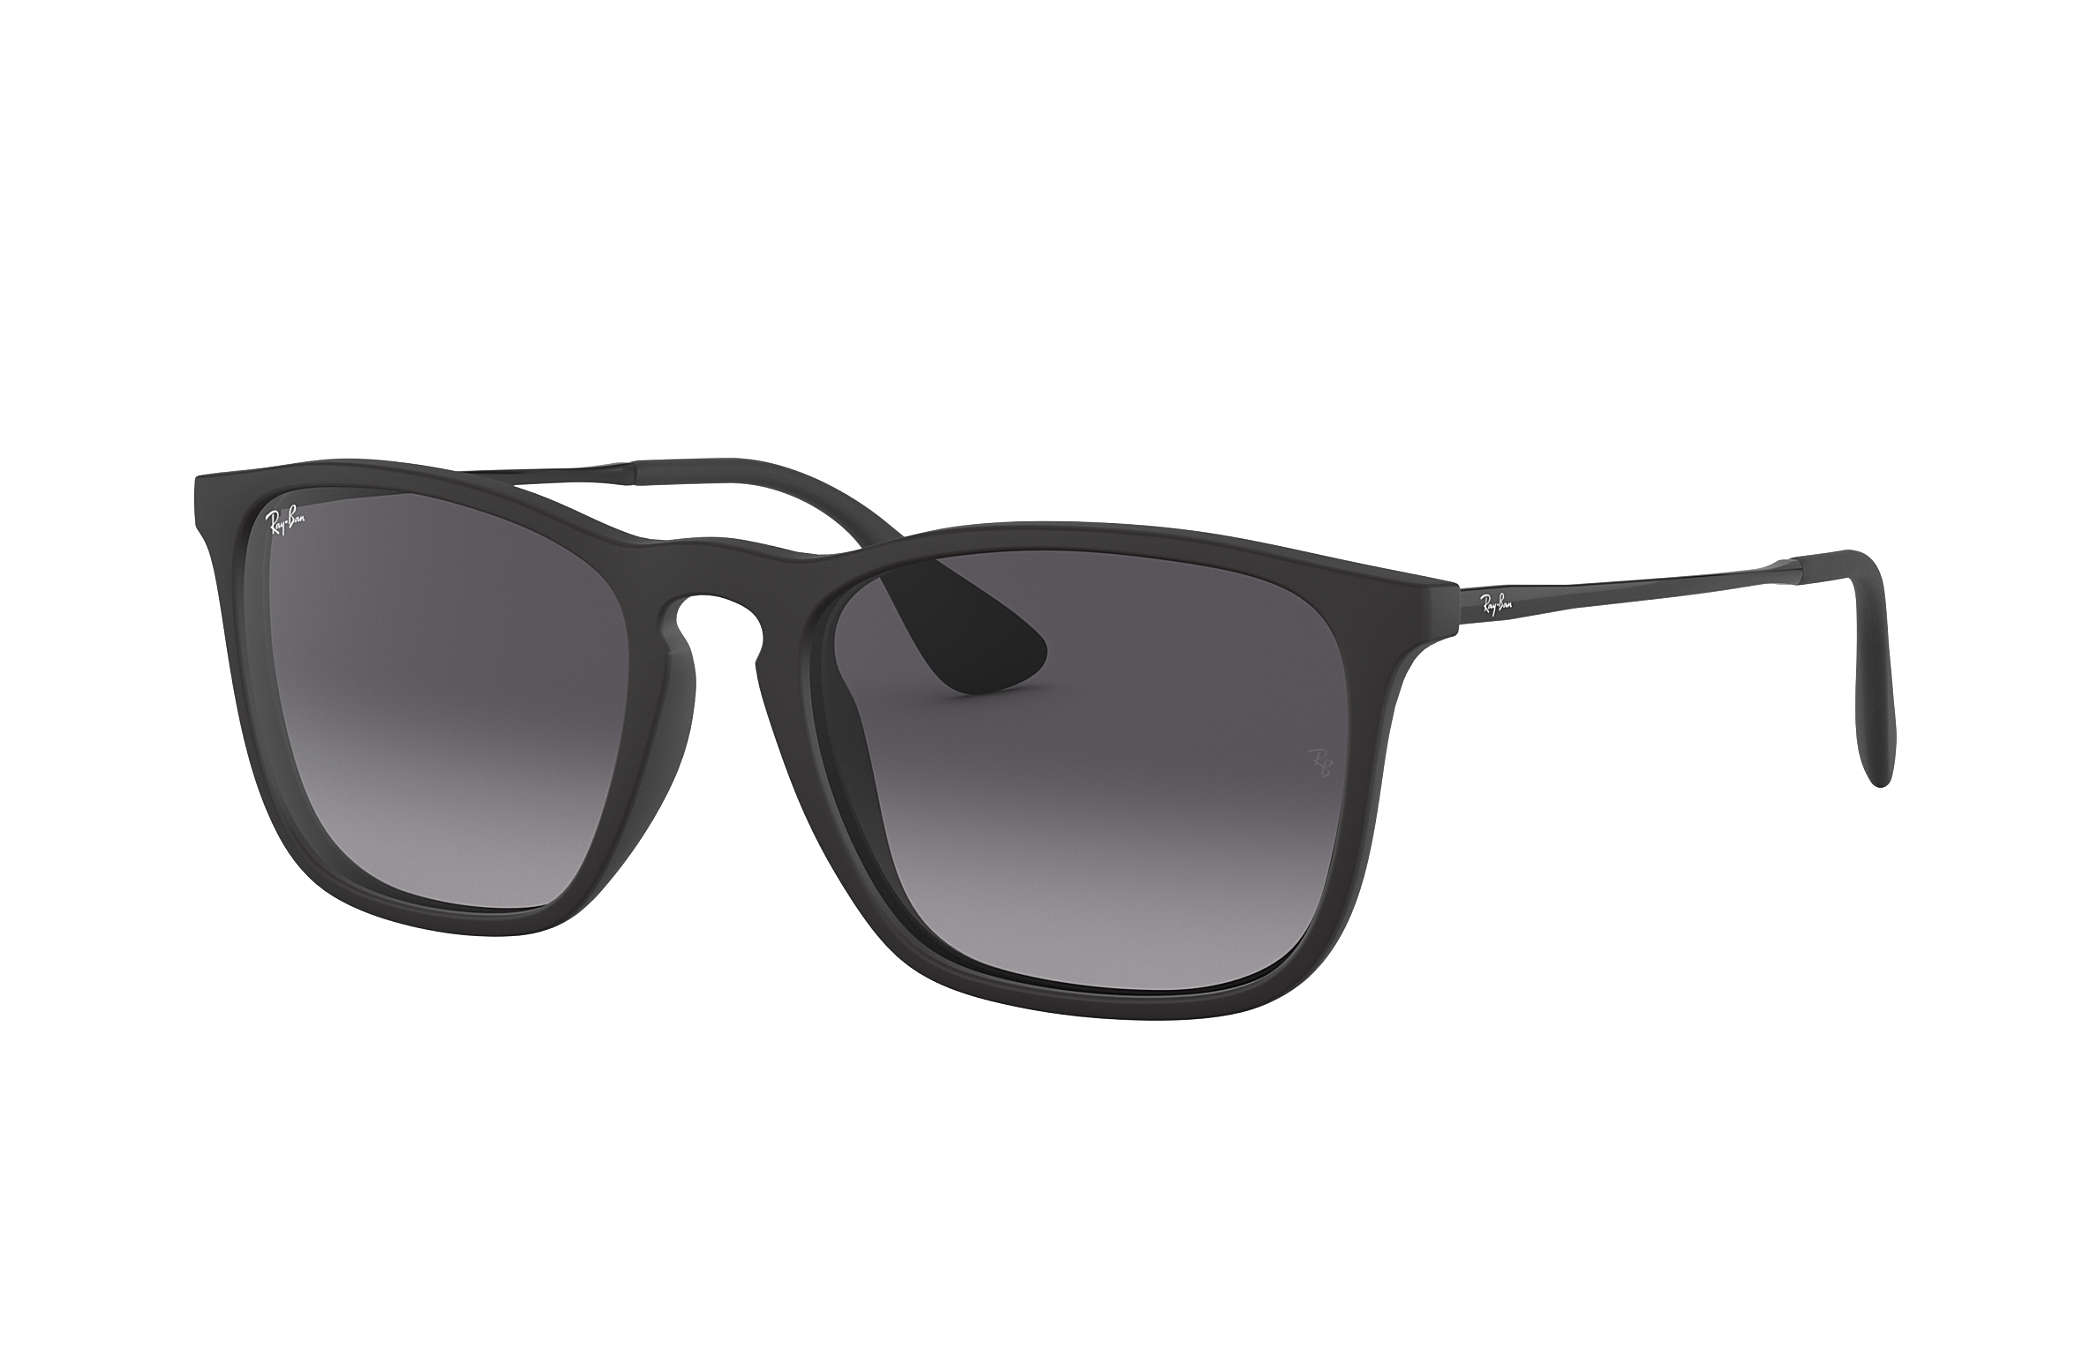 f9f9c847020 Ray-Ban Chris RB4187 Black - Nylon - Grey Lenses - 0RB4187622 8G54 ...